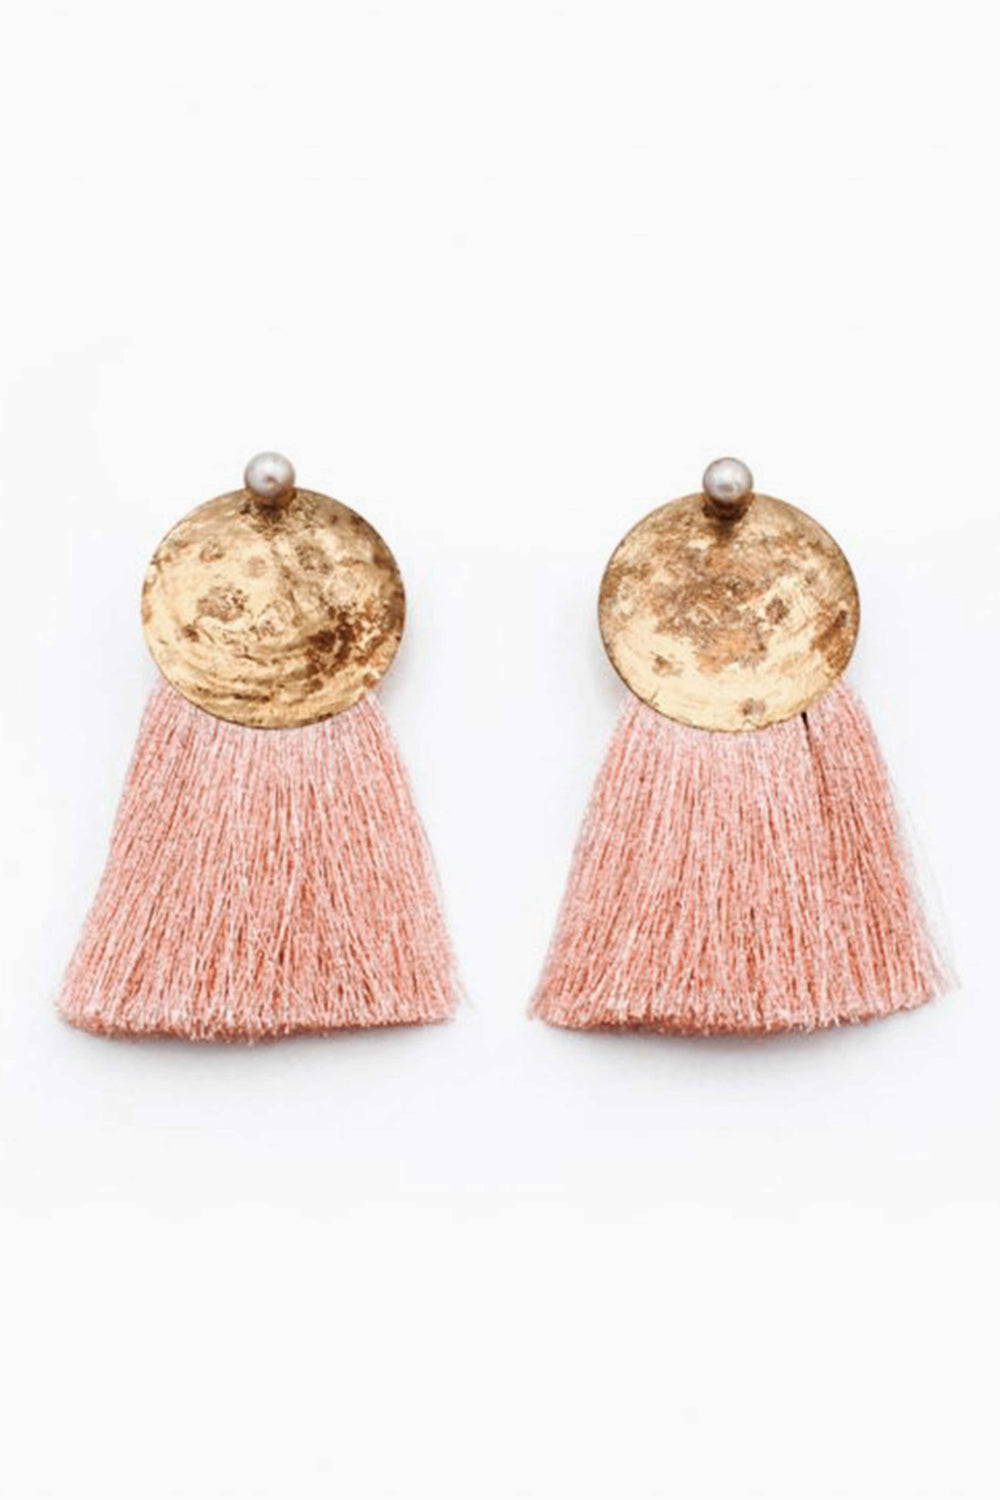 NEVER ENDING SUMMER EARRINGS | Women's Online Shopping | CHICLEFRIQUE